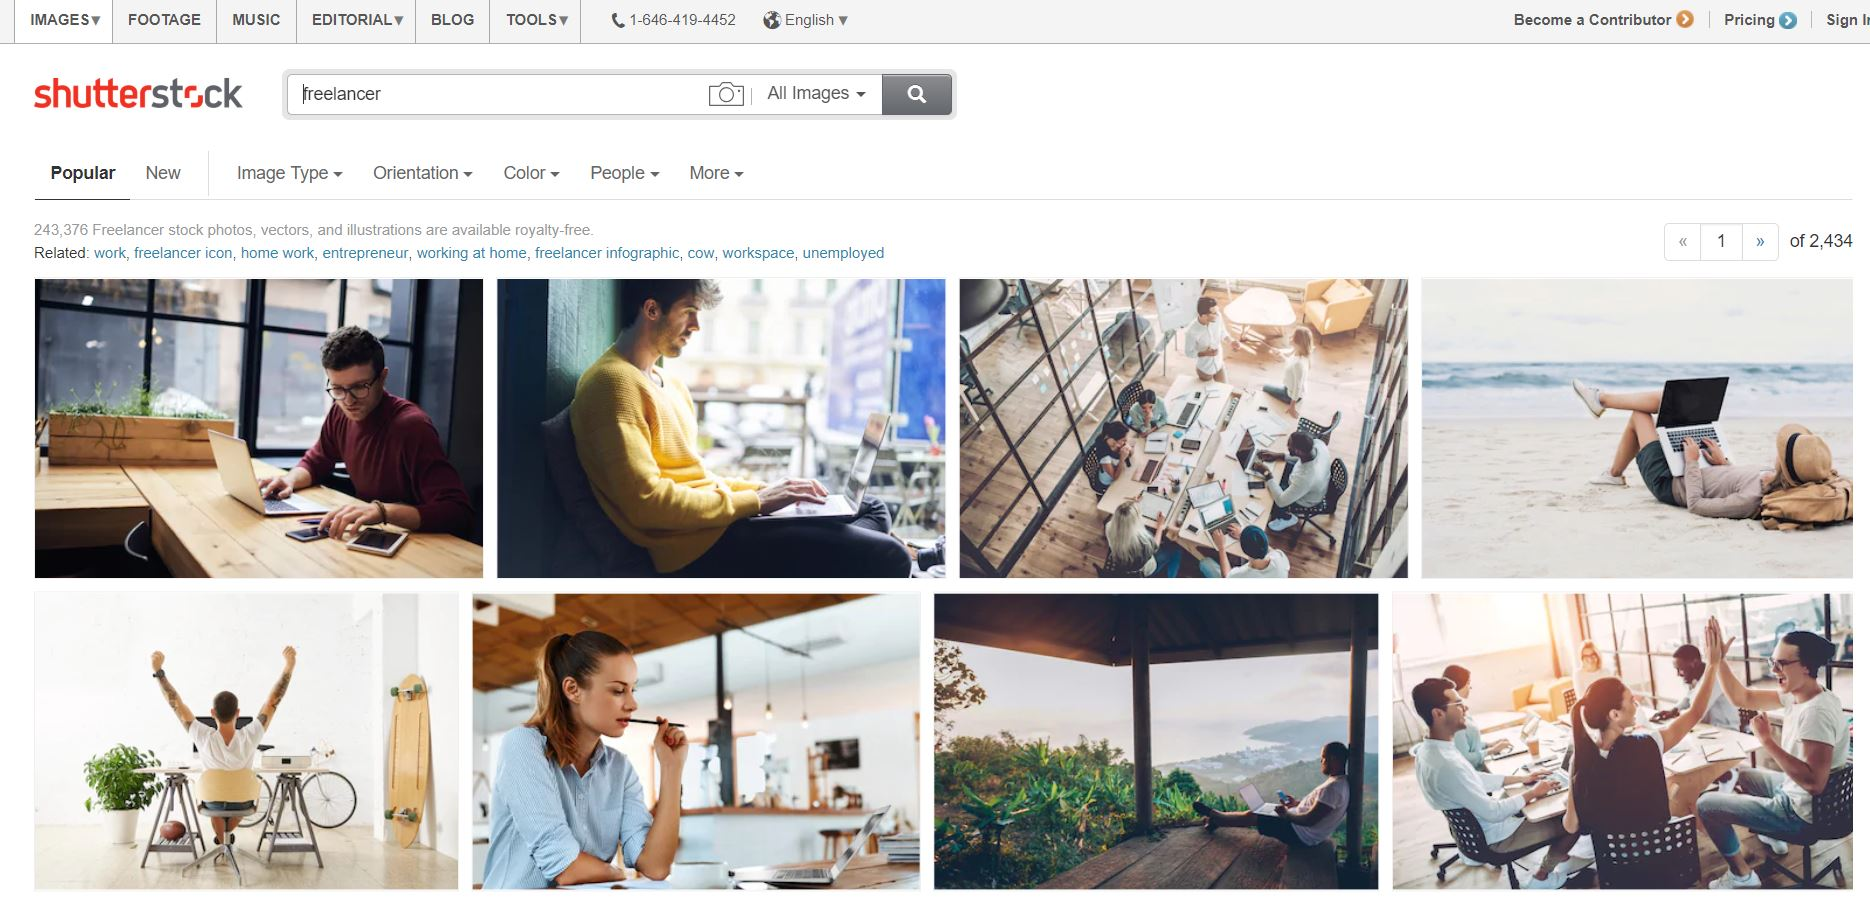 Tools for freelancers - shutterstock